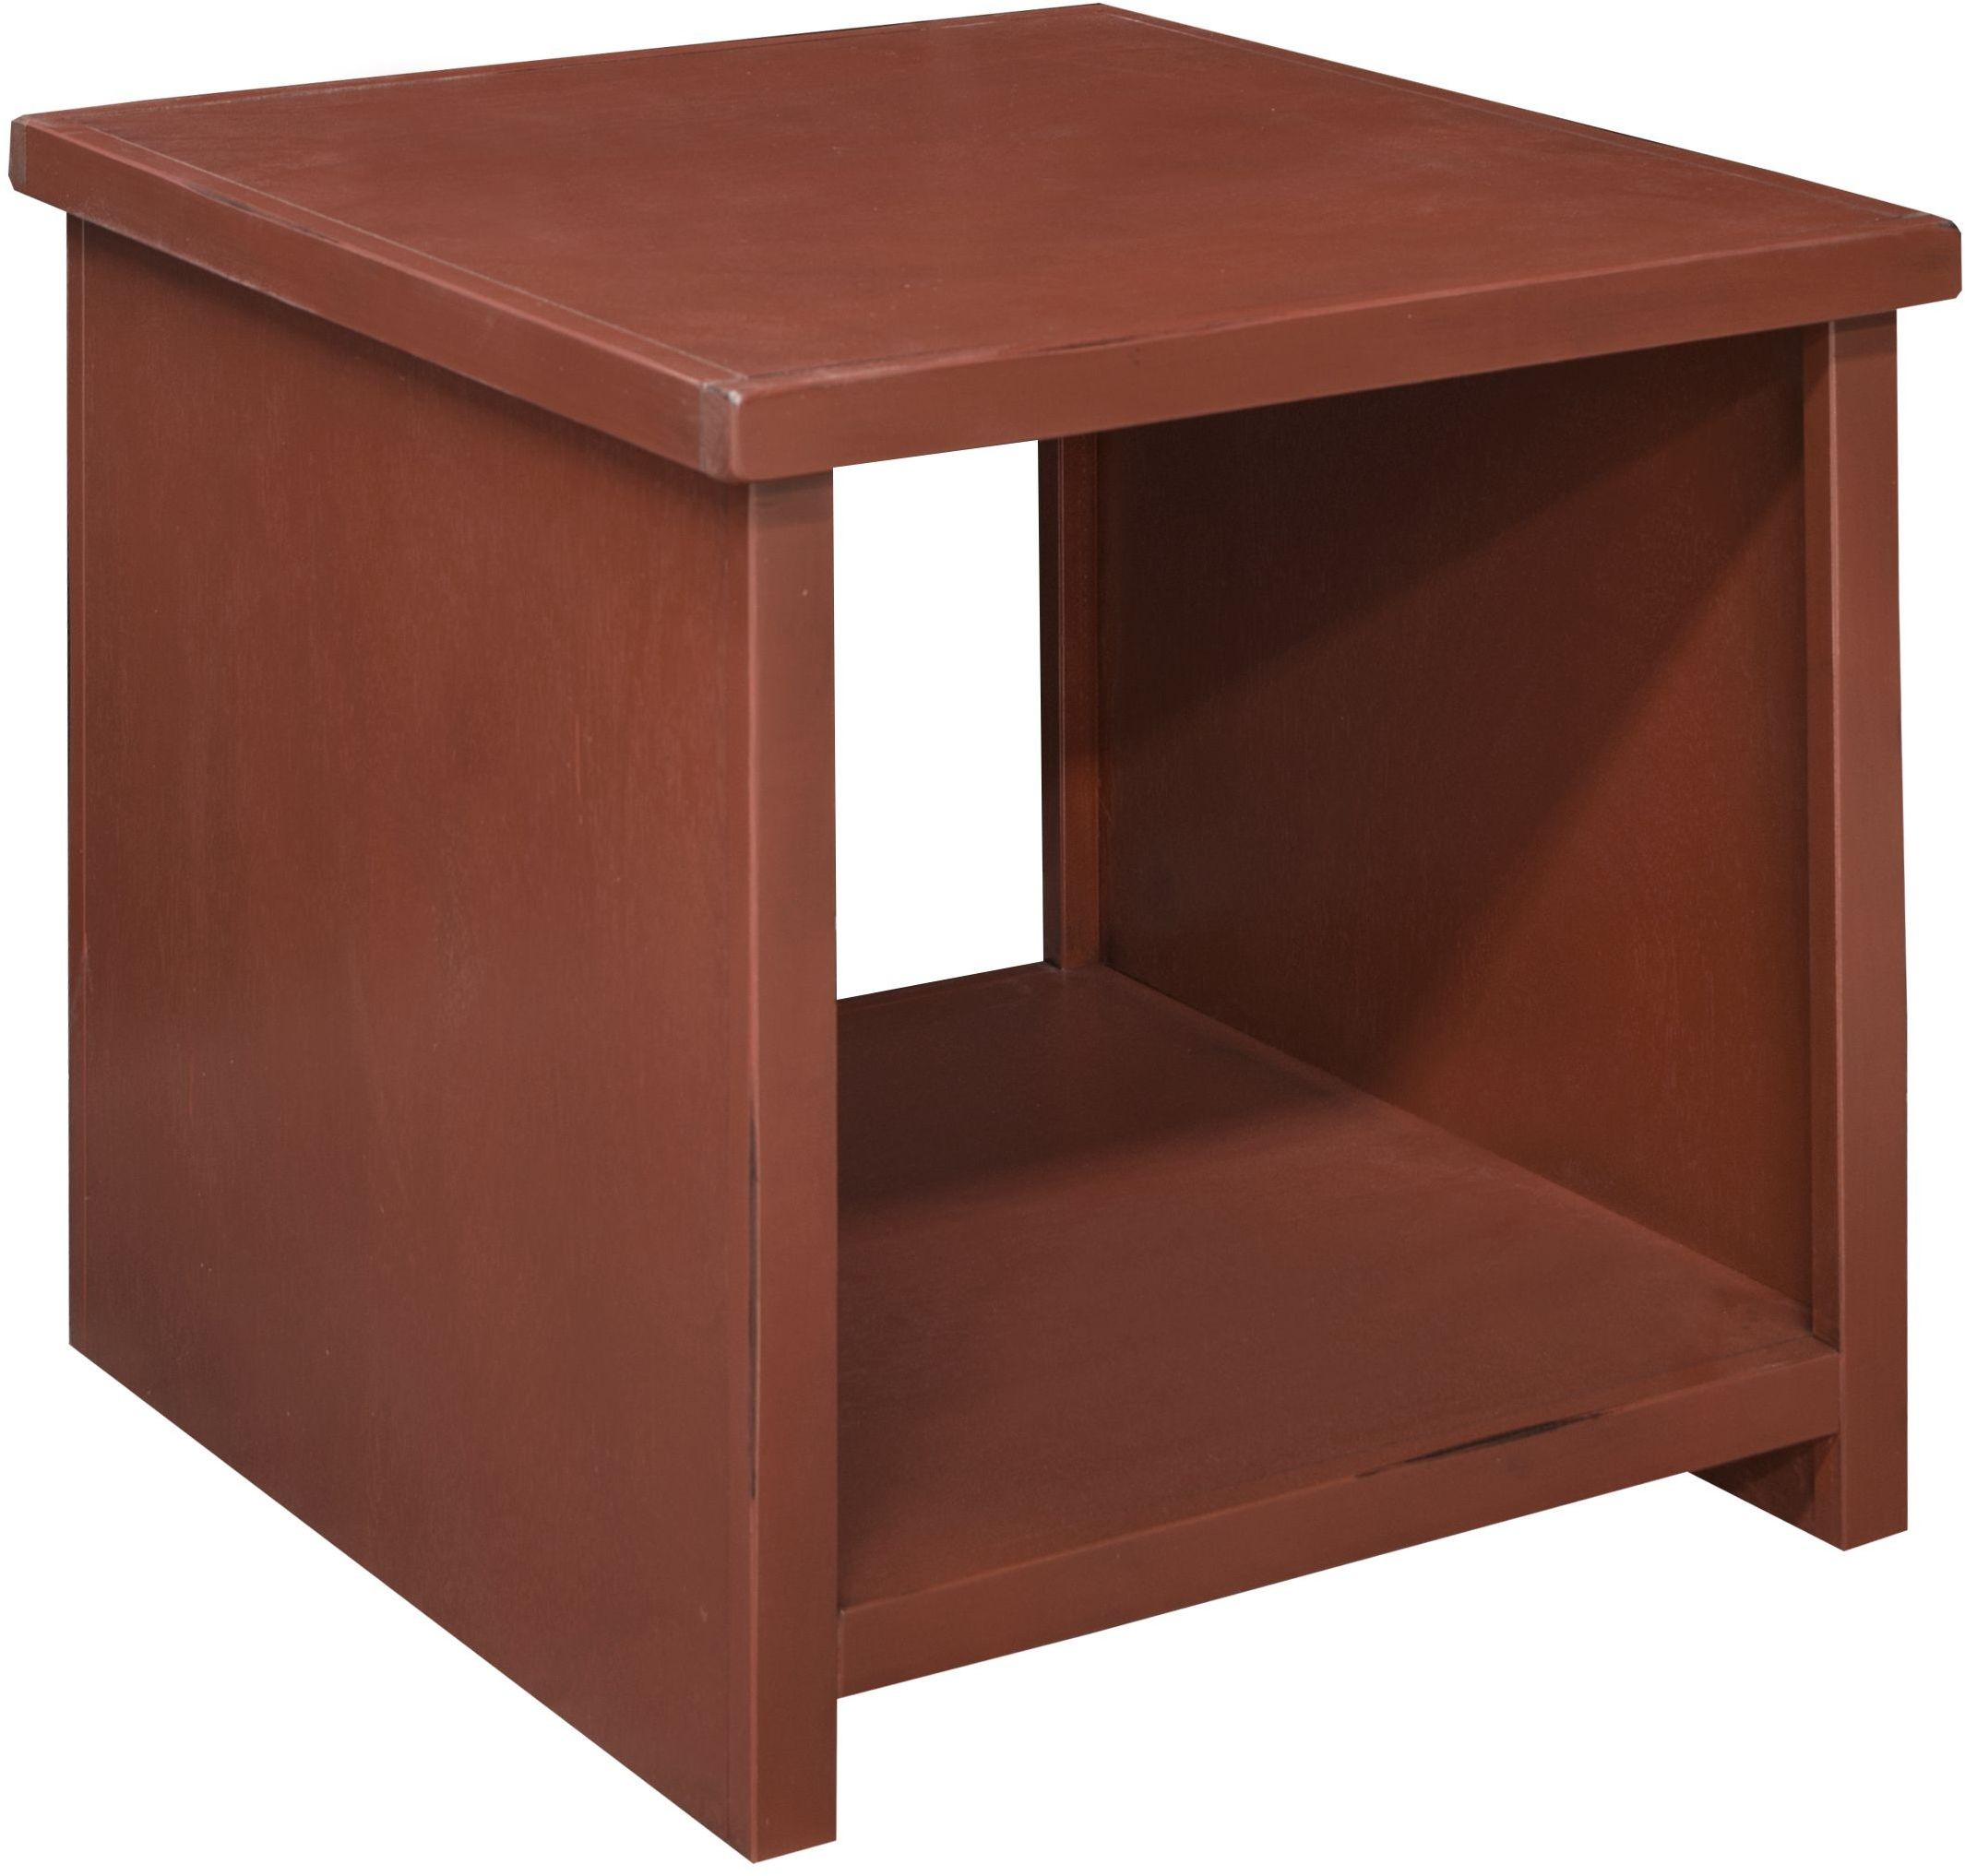 Calistoga red end table ca4130 rrd legends furniture for Red side table